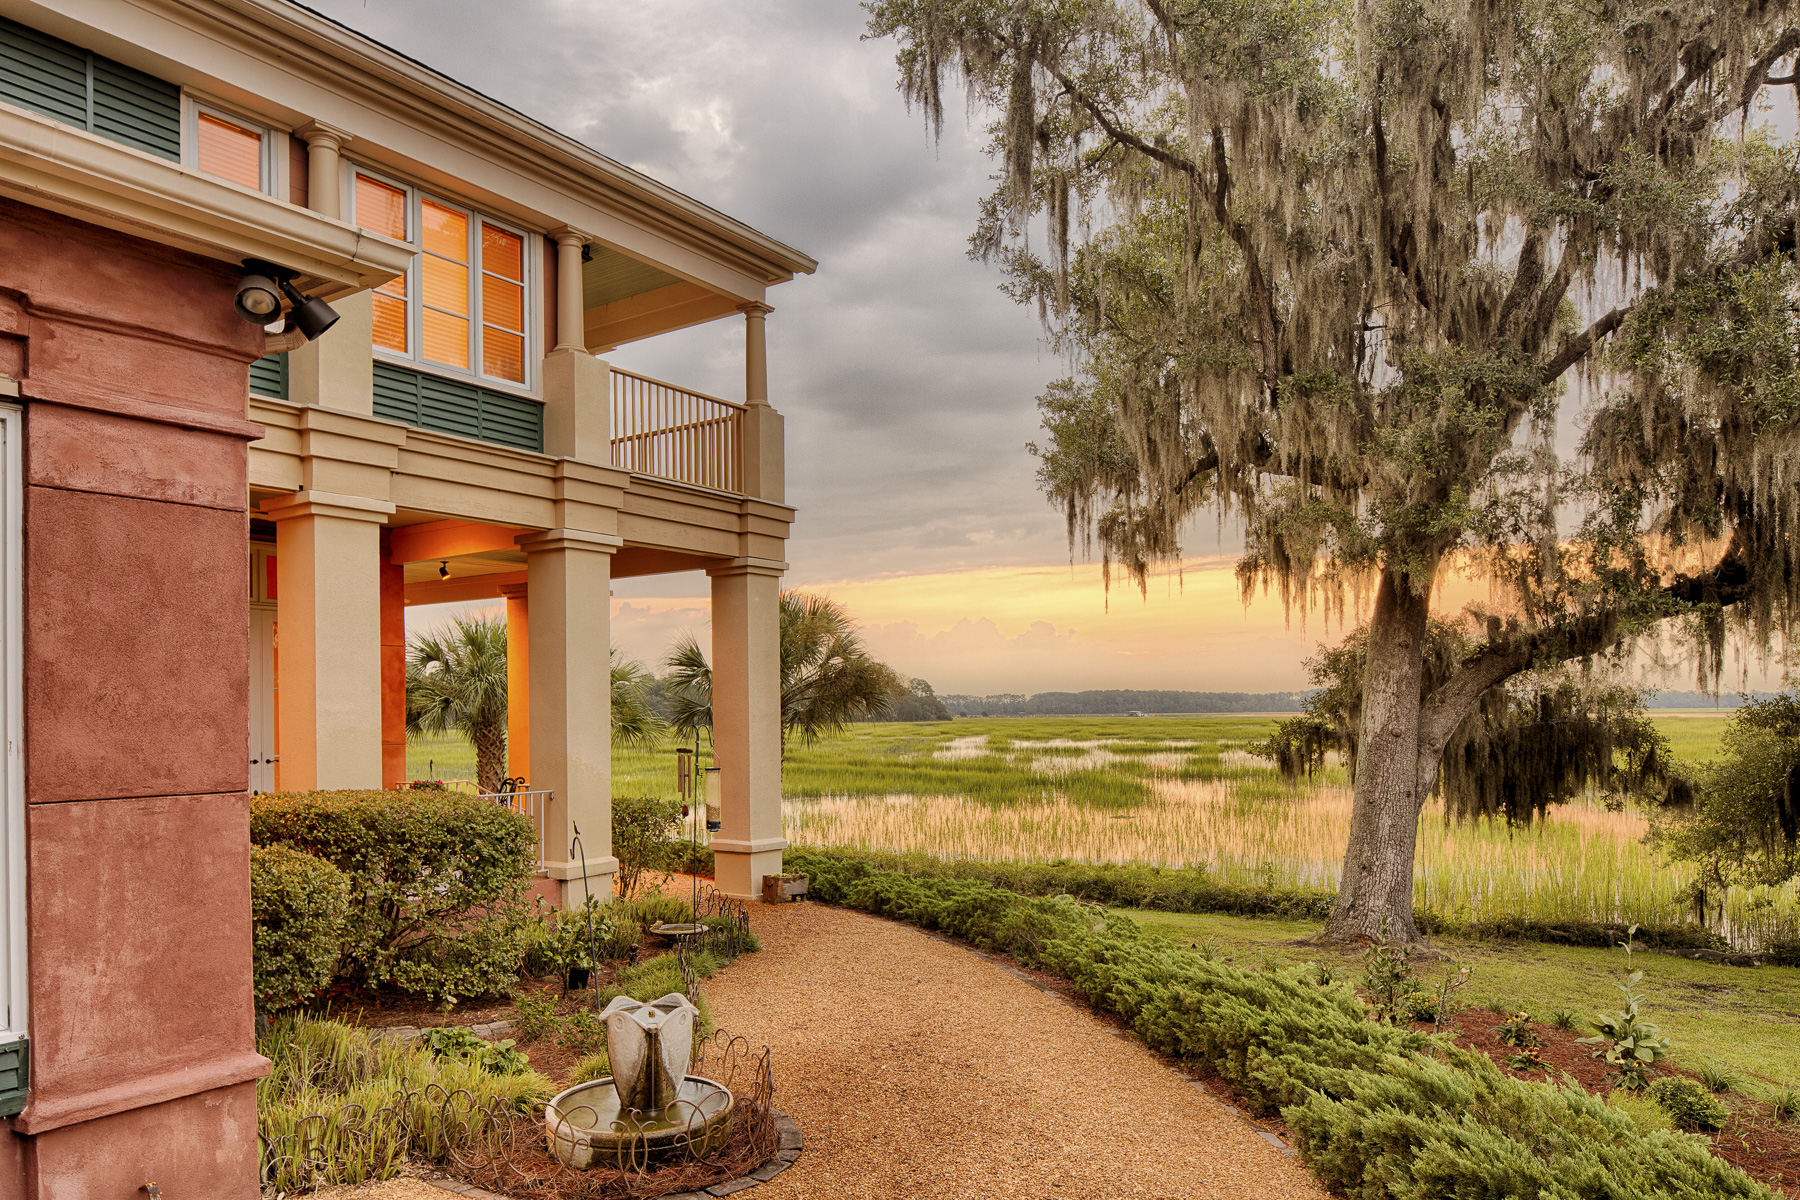 Other Residential for Sale at Galleon's Lap 1 Heffalump Road Bluffton, South Carolina, 29909 United States